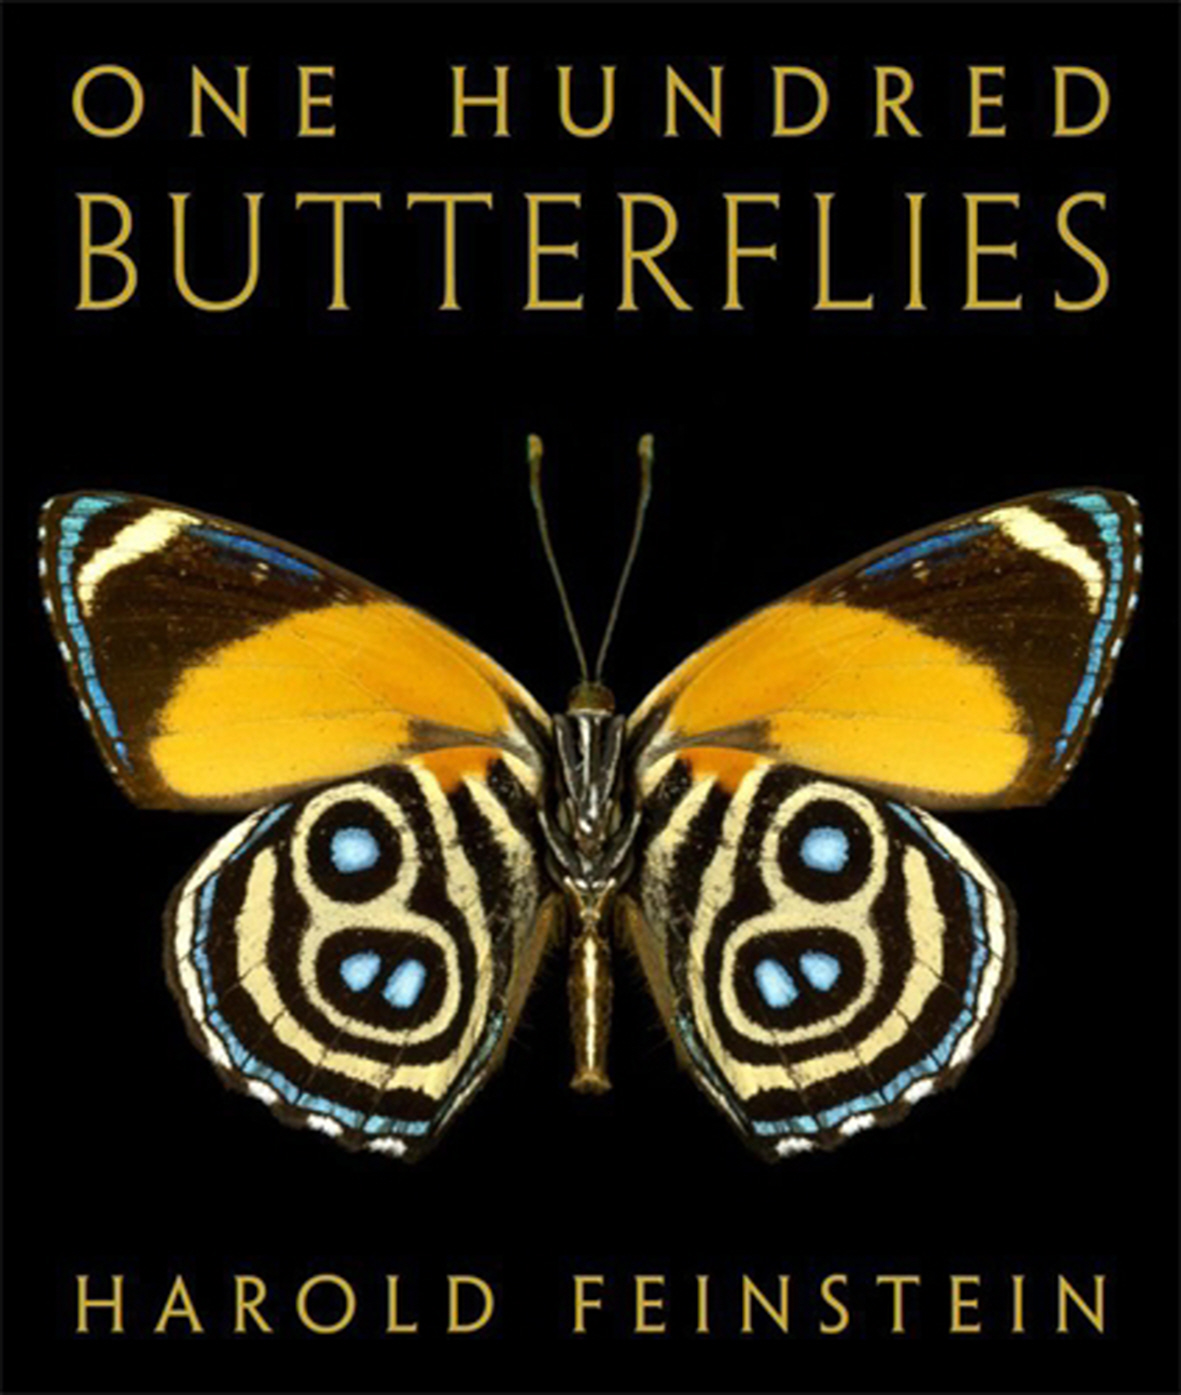 One Hundred Butterflies: The Butterfly Photographs of Harold Feinstein